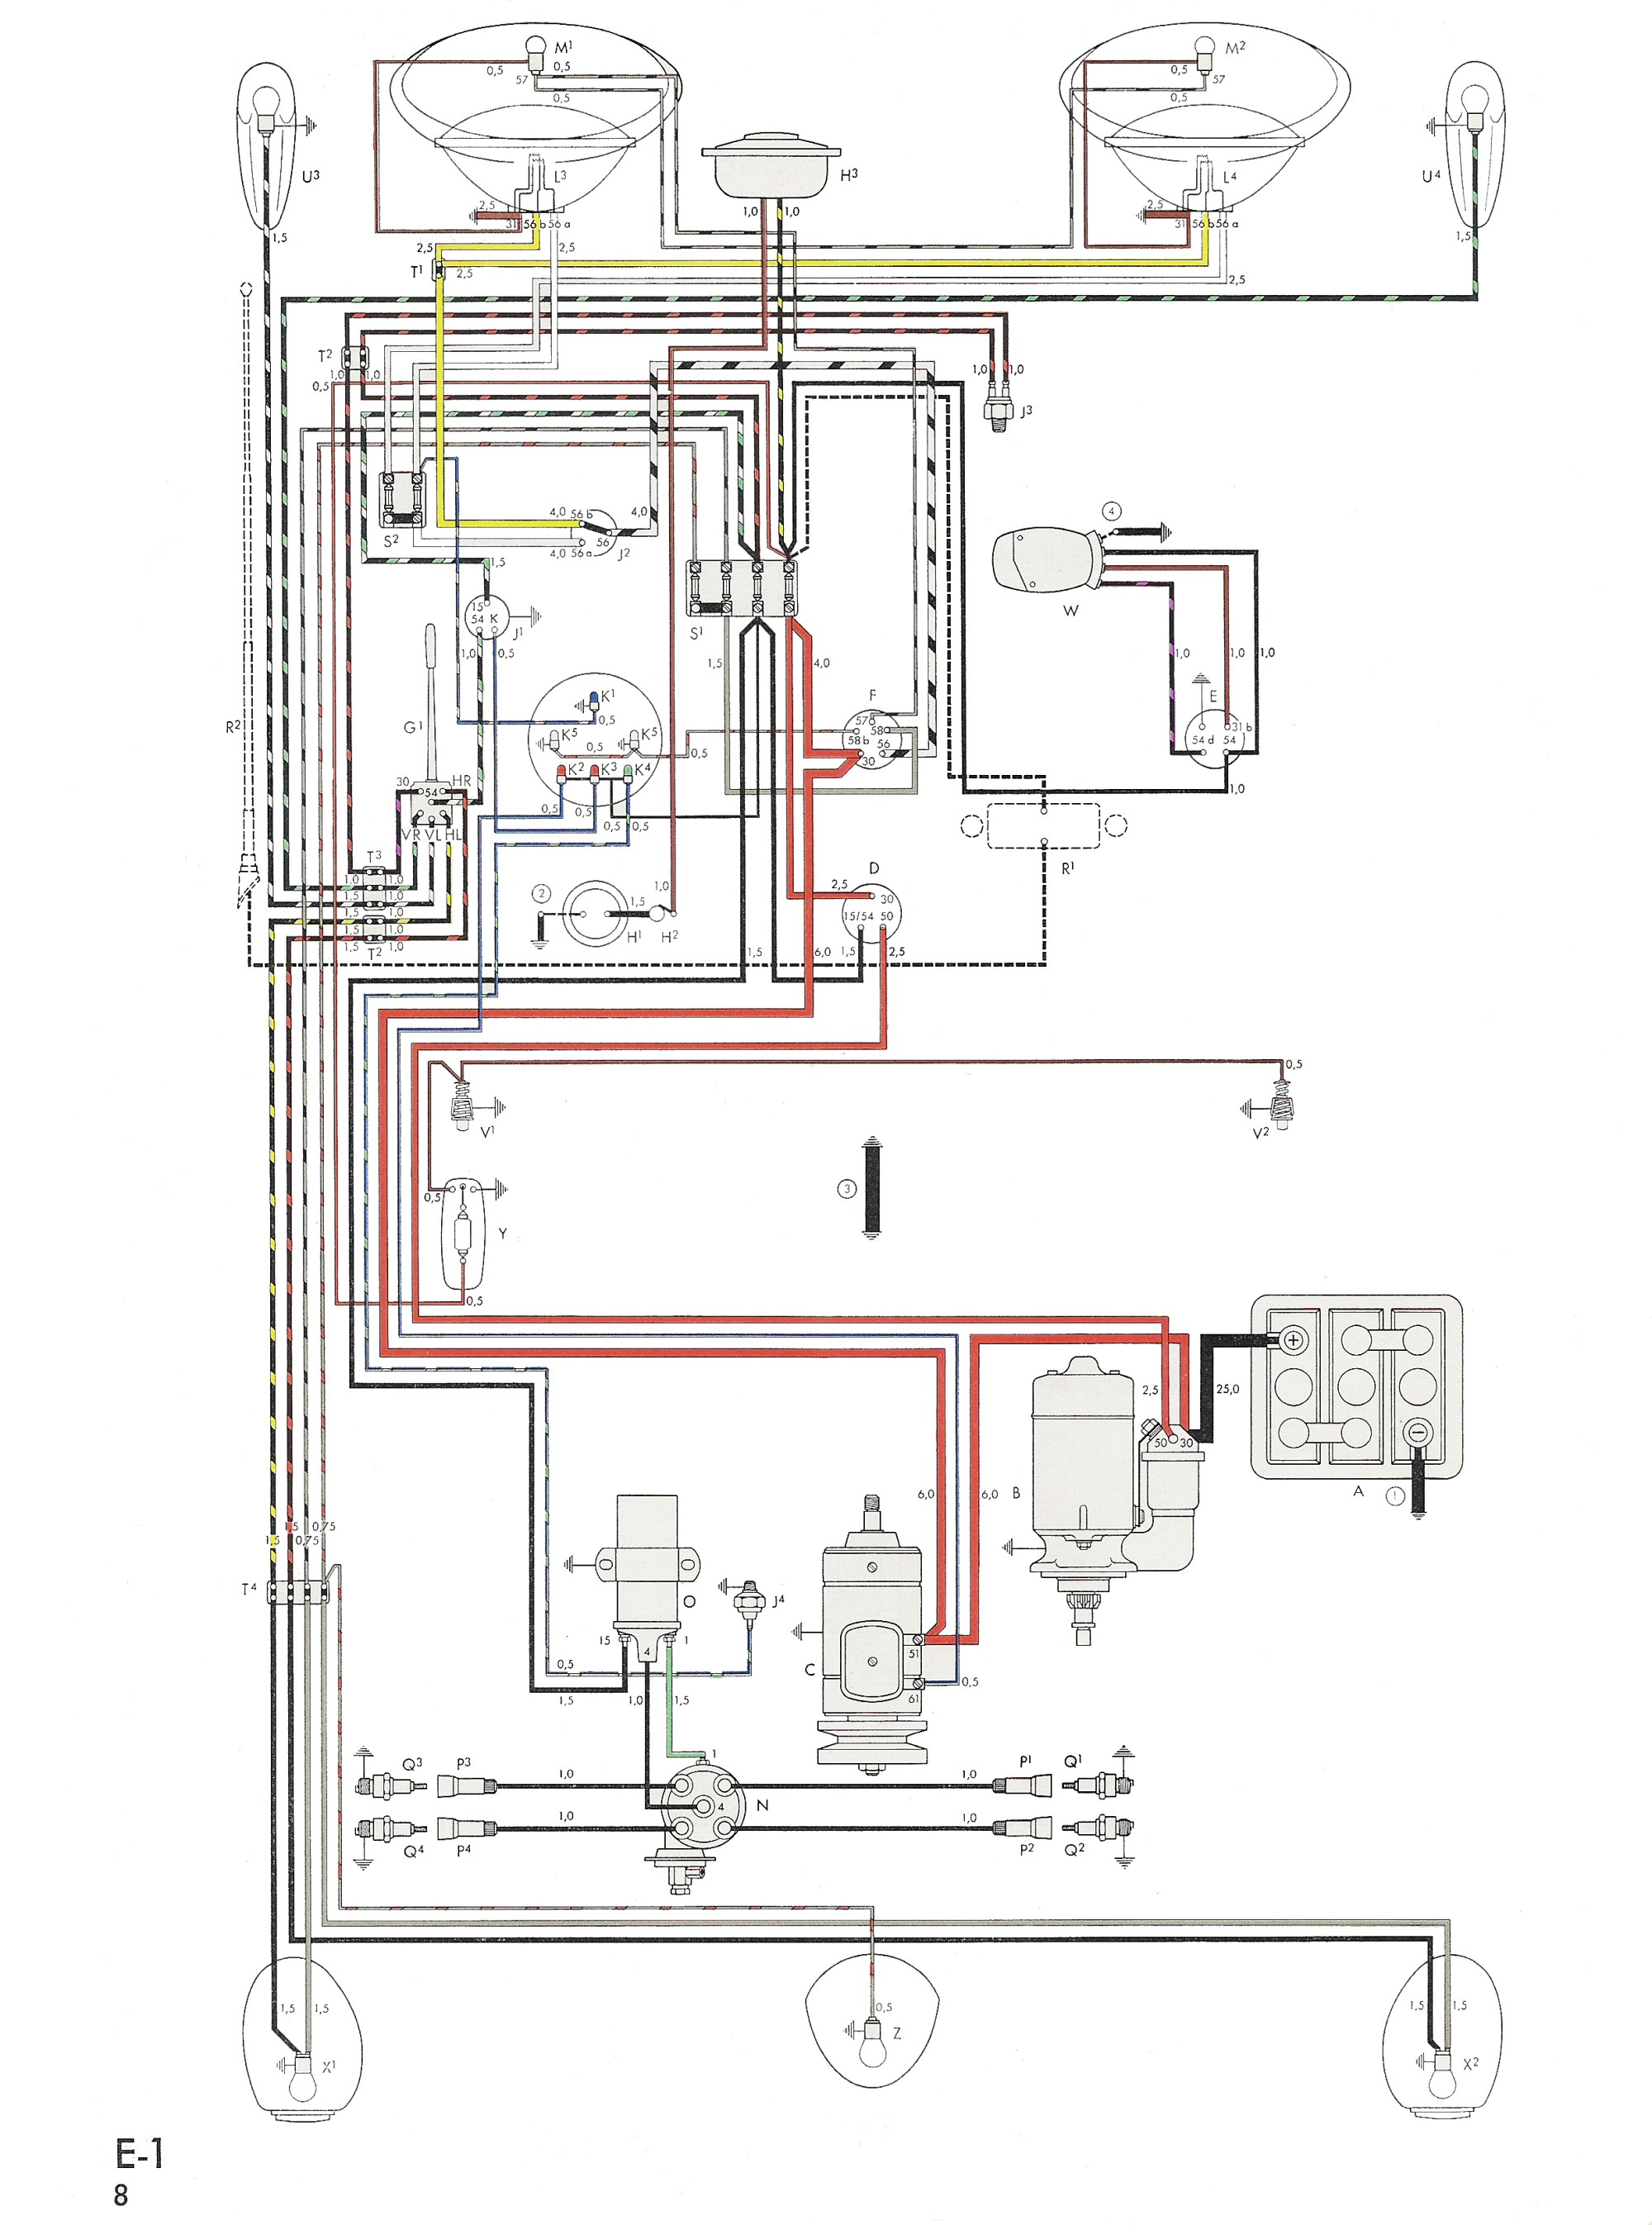 hight resolution of thesamba com type 1 wiring diagrams 1970 volkswagen beetle wiring diagram wiring for 2004 vw beetle